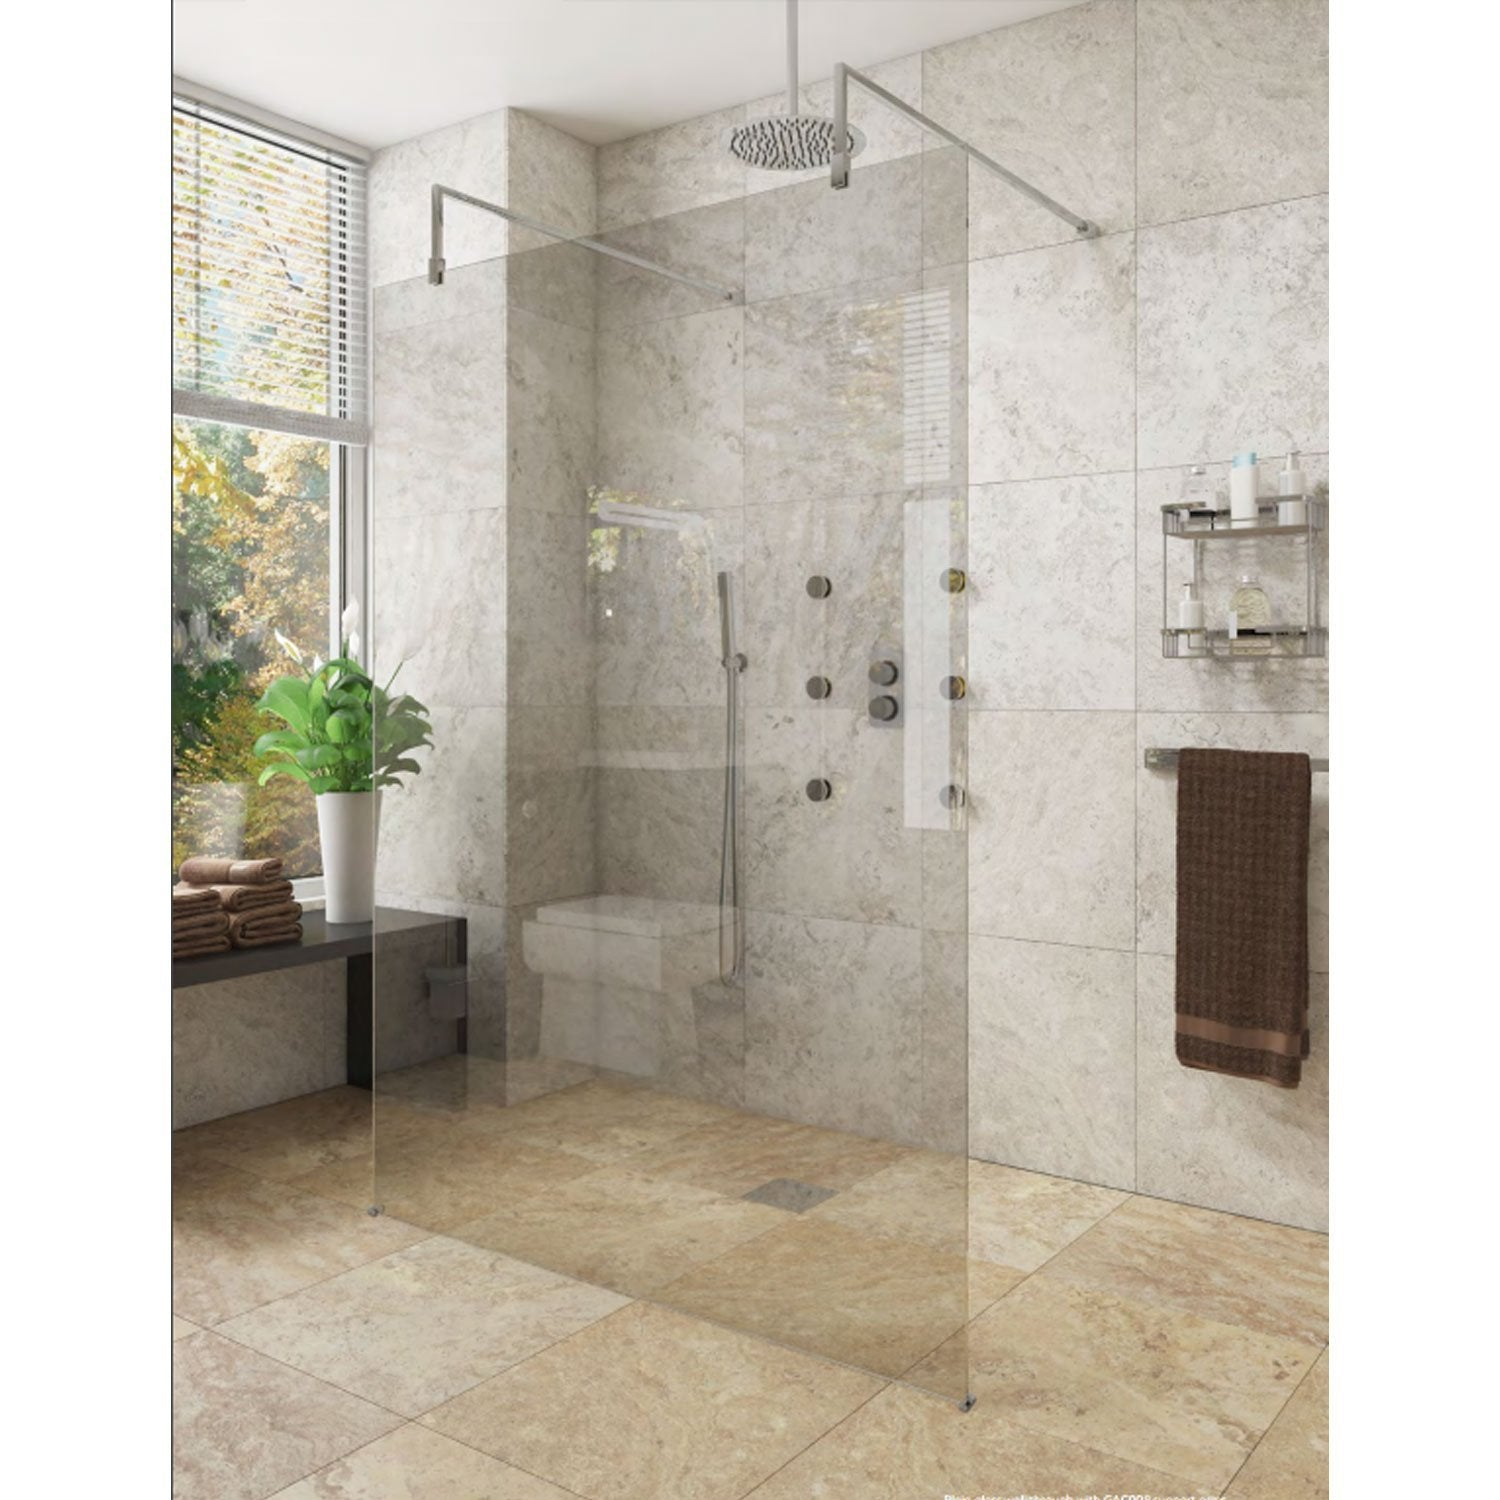 Cassellie Marna Wet Room Screen 1850mm High x 700mm Wide - 8mm Glass